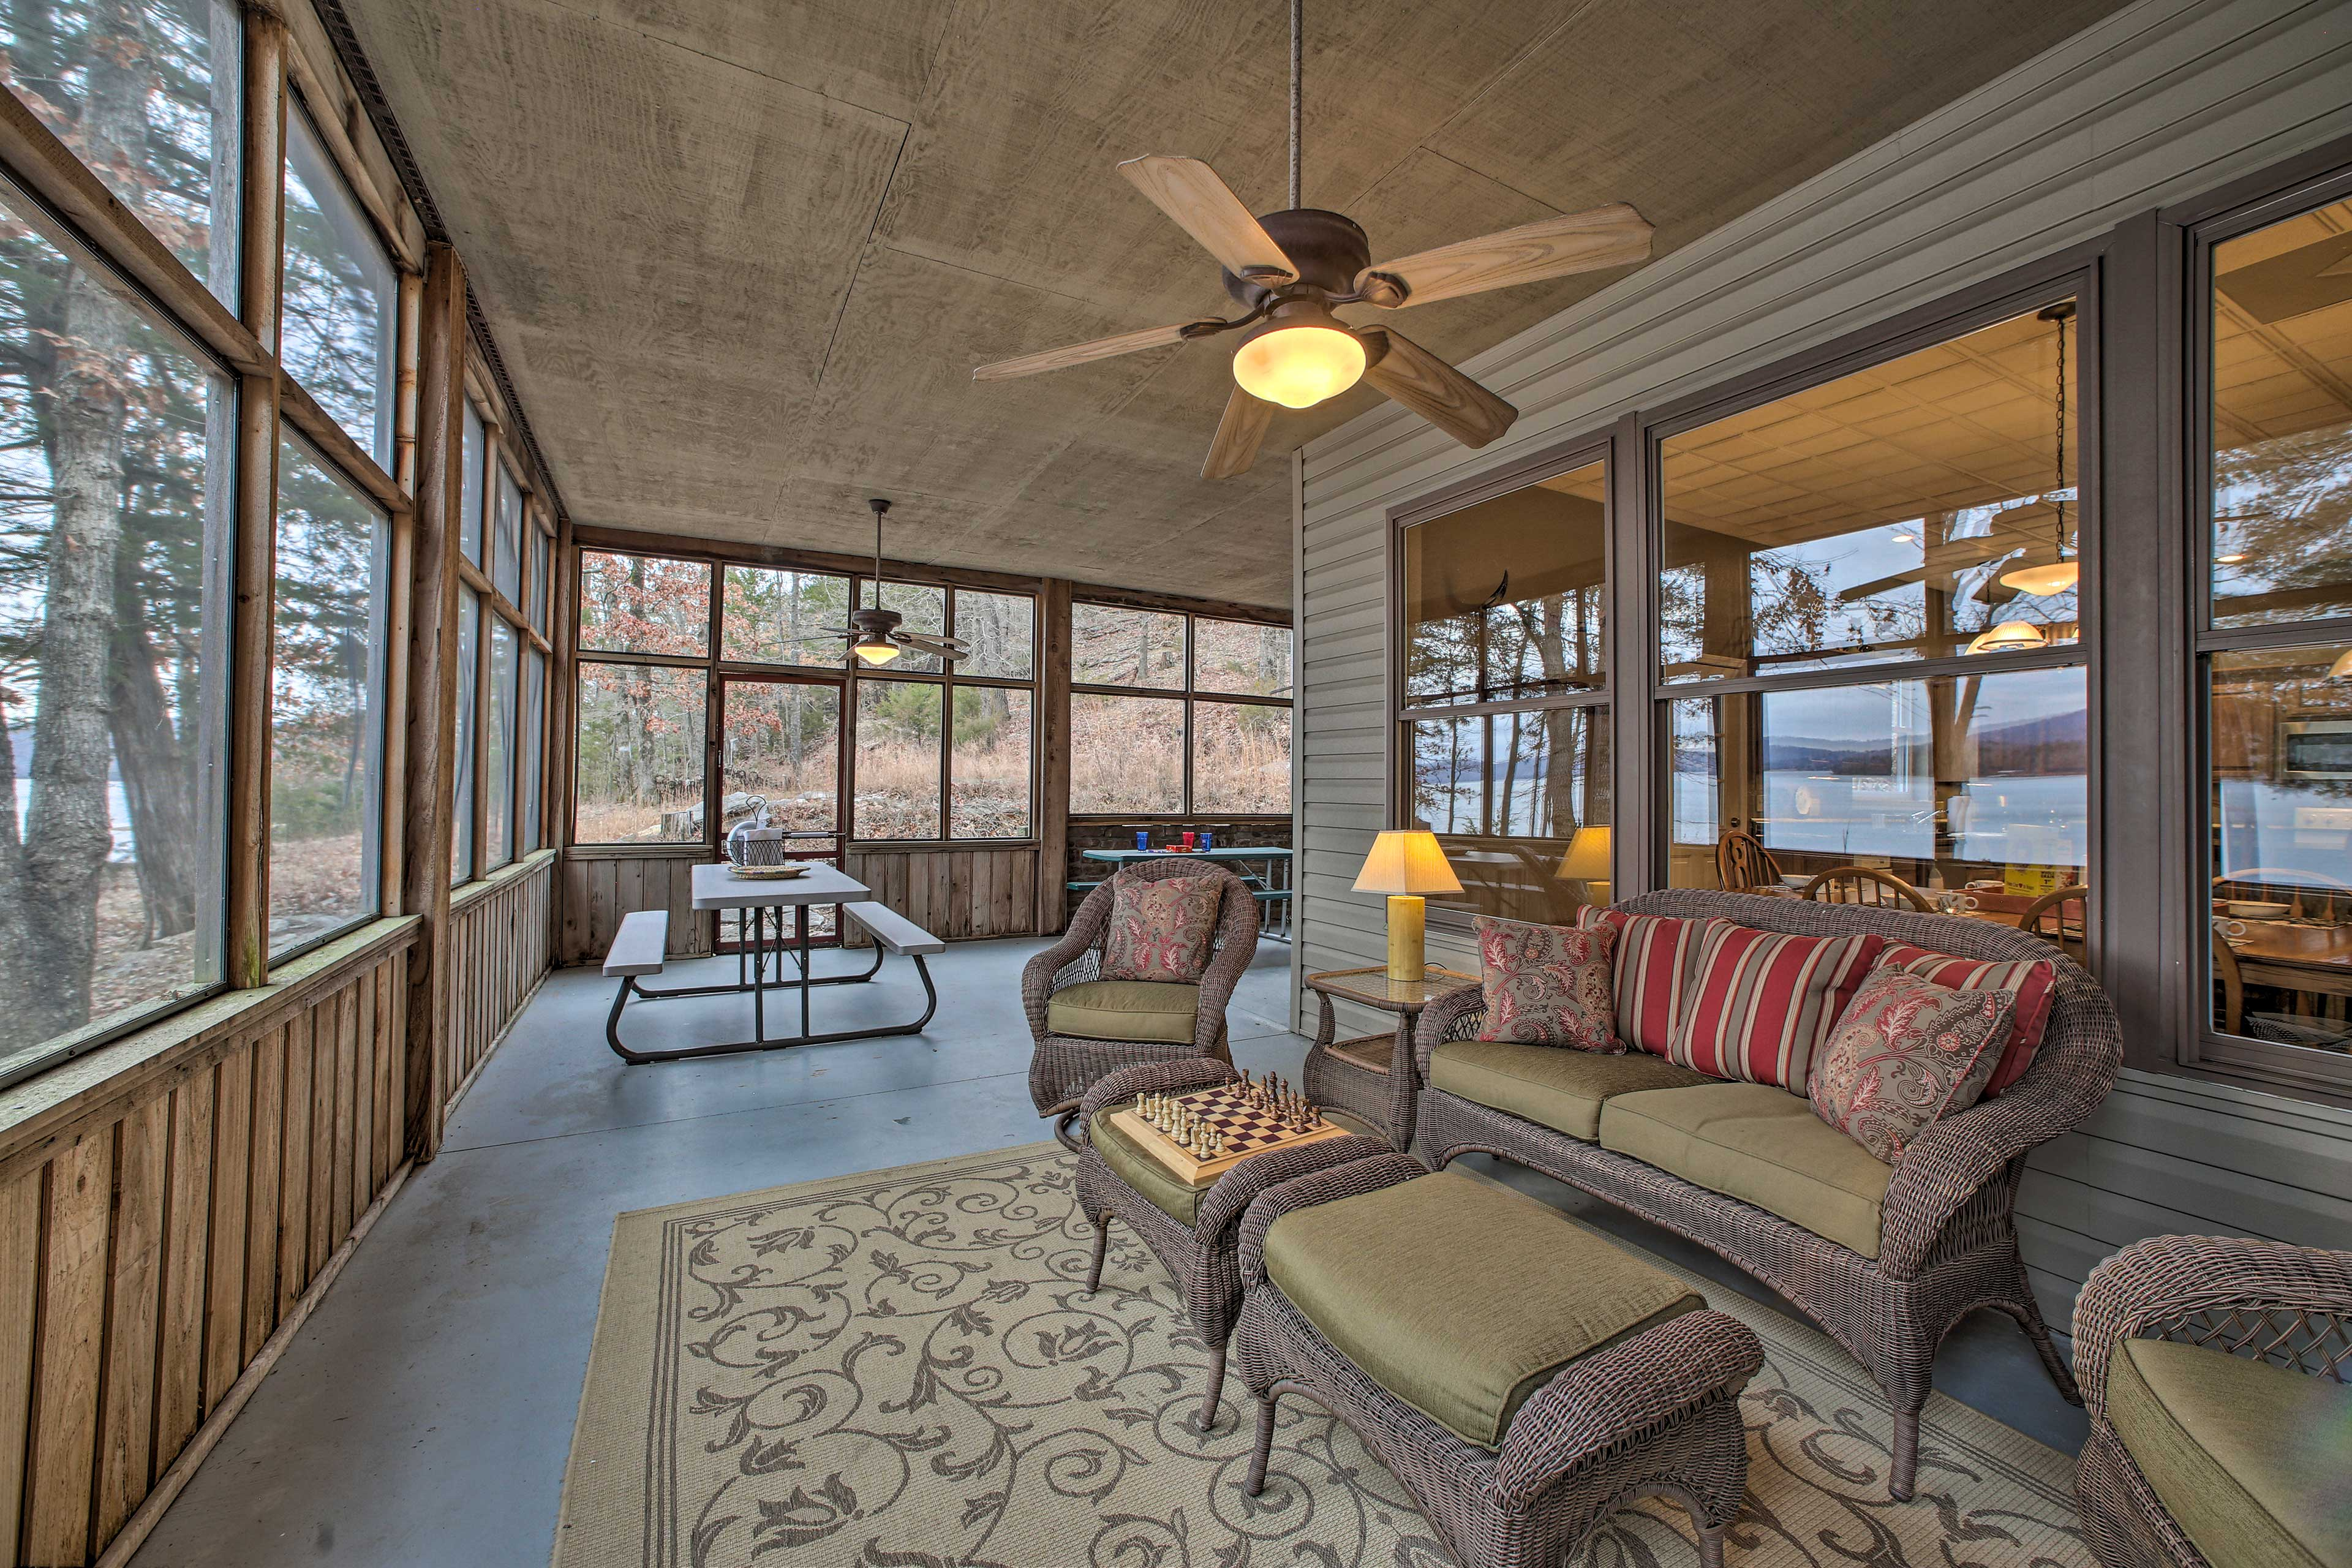 The screened-in porch features plenty of seating, 2 picnic tables, and a grill!